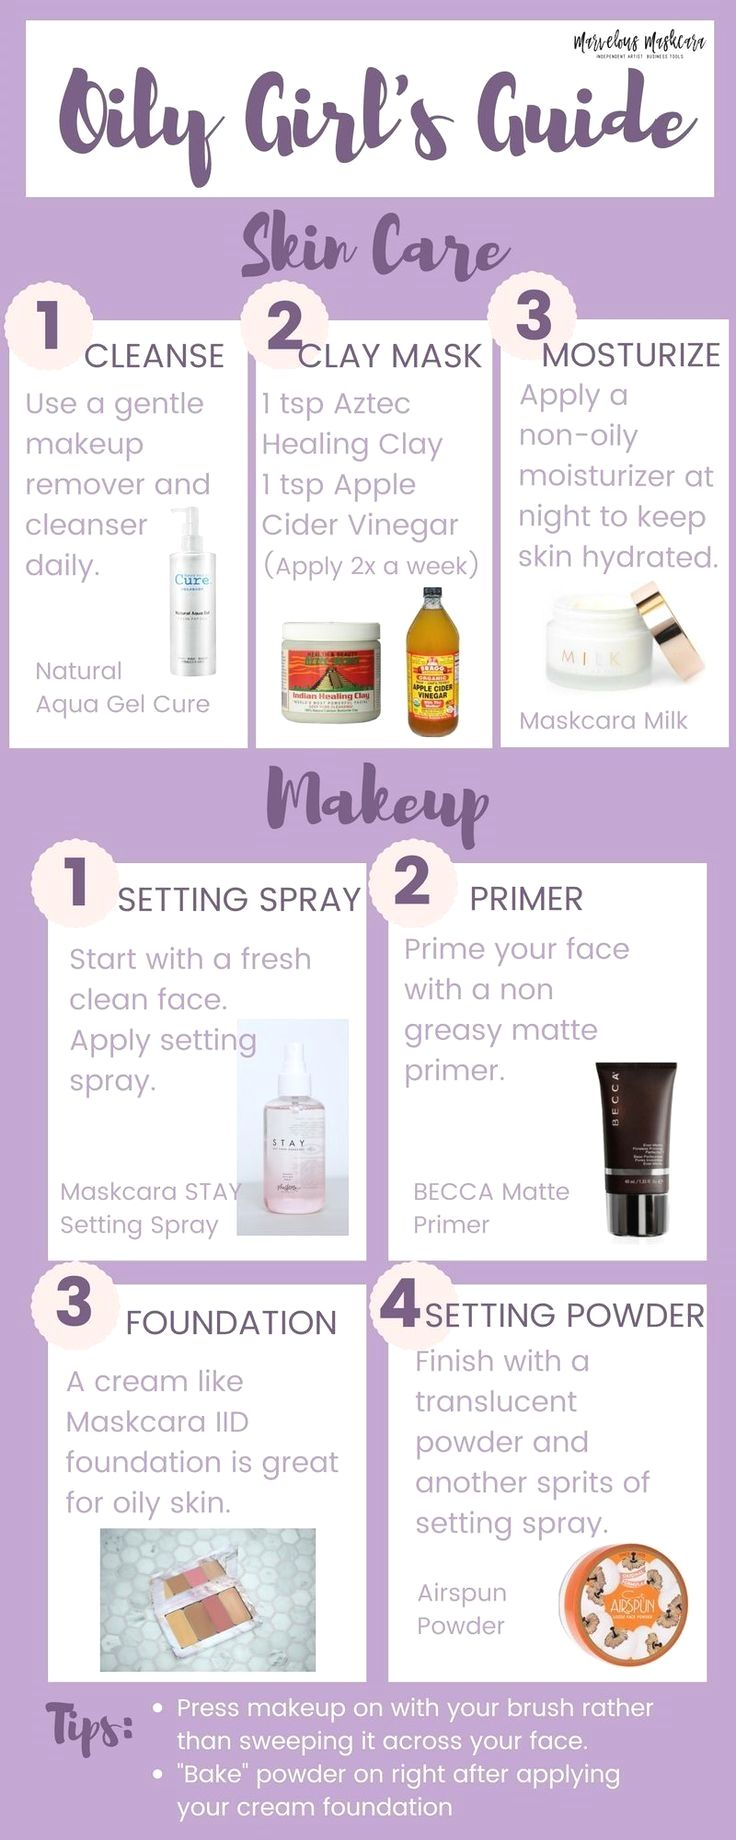 Oily Girls Guide Makeup And Skincare Tips For Women With Oily Skin Skincare Routine Oily Skin Care Routine Skin Care Oily Skin Care